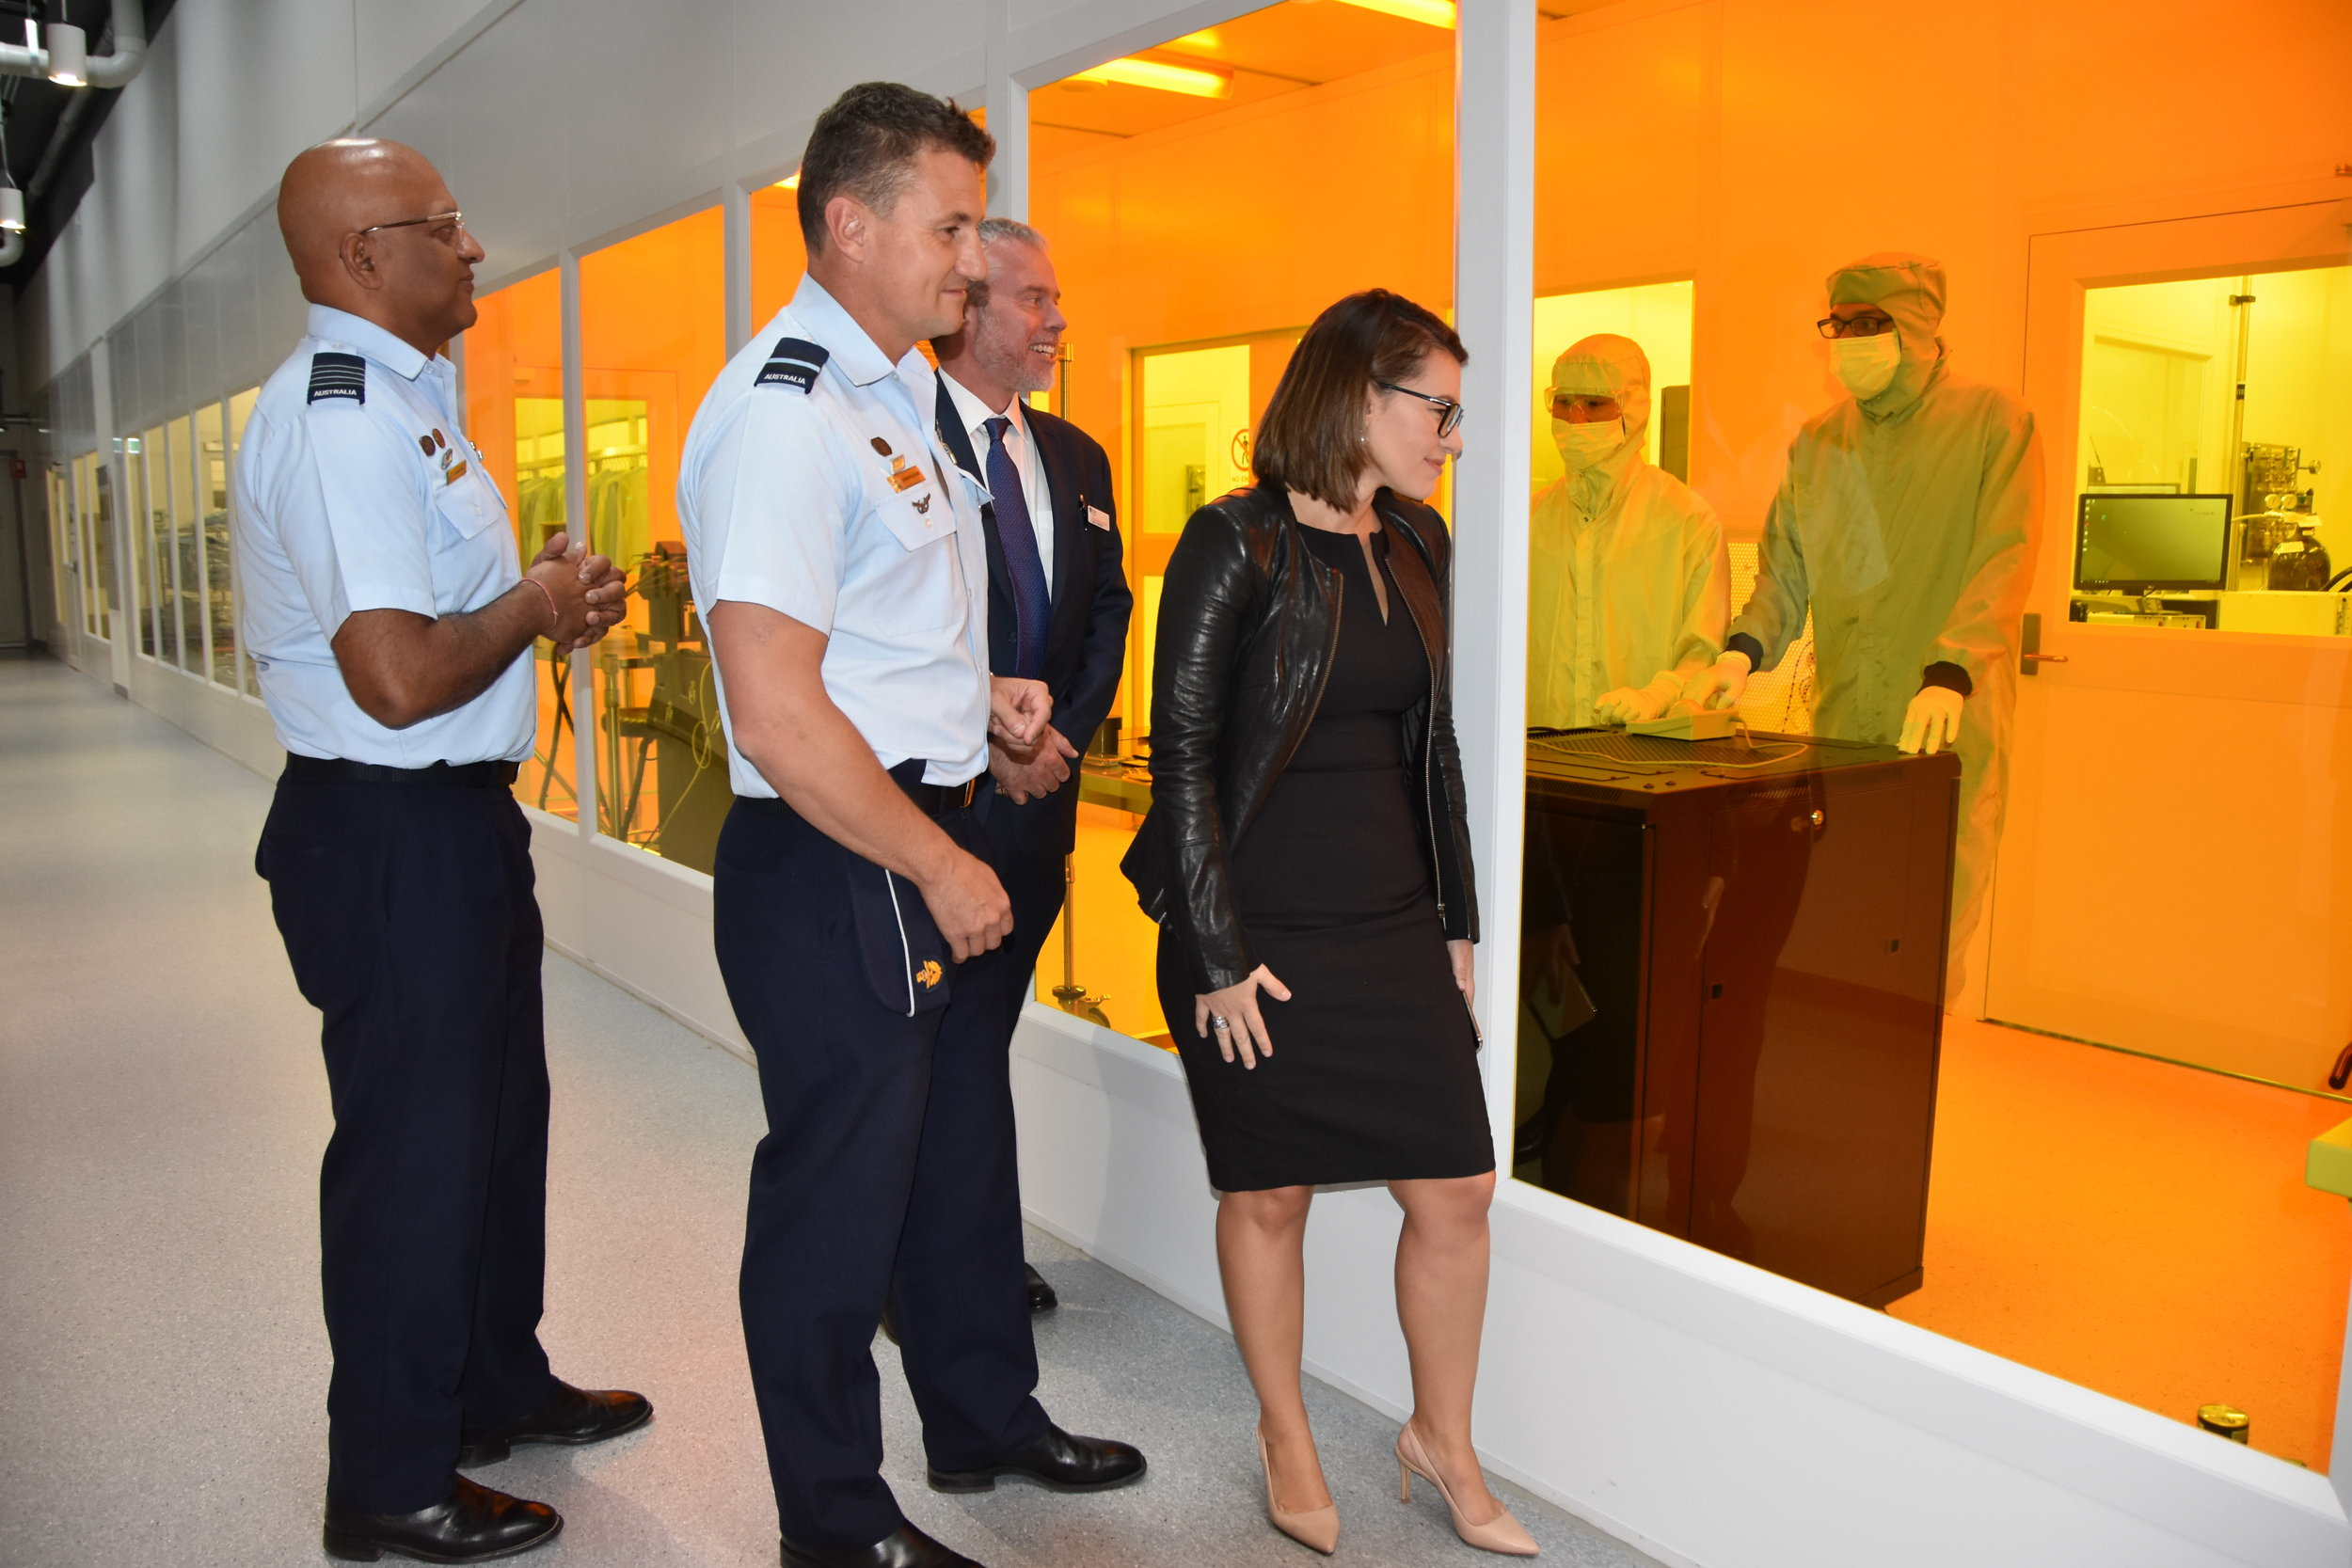 NSSN Co-Director Prof. Ben Eggleton and The University of Sydney's A/Prof Cara Wrigley show the RAAF's Wing Commander Jerome Reid and Air Commodore Darren Goldie through the smart sensing laboratories at the University of Sydney's Nano Institute